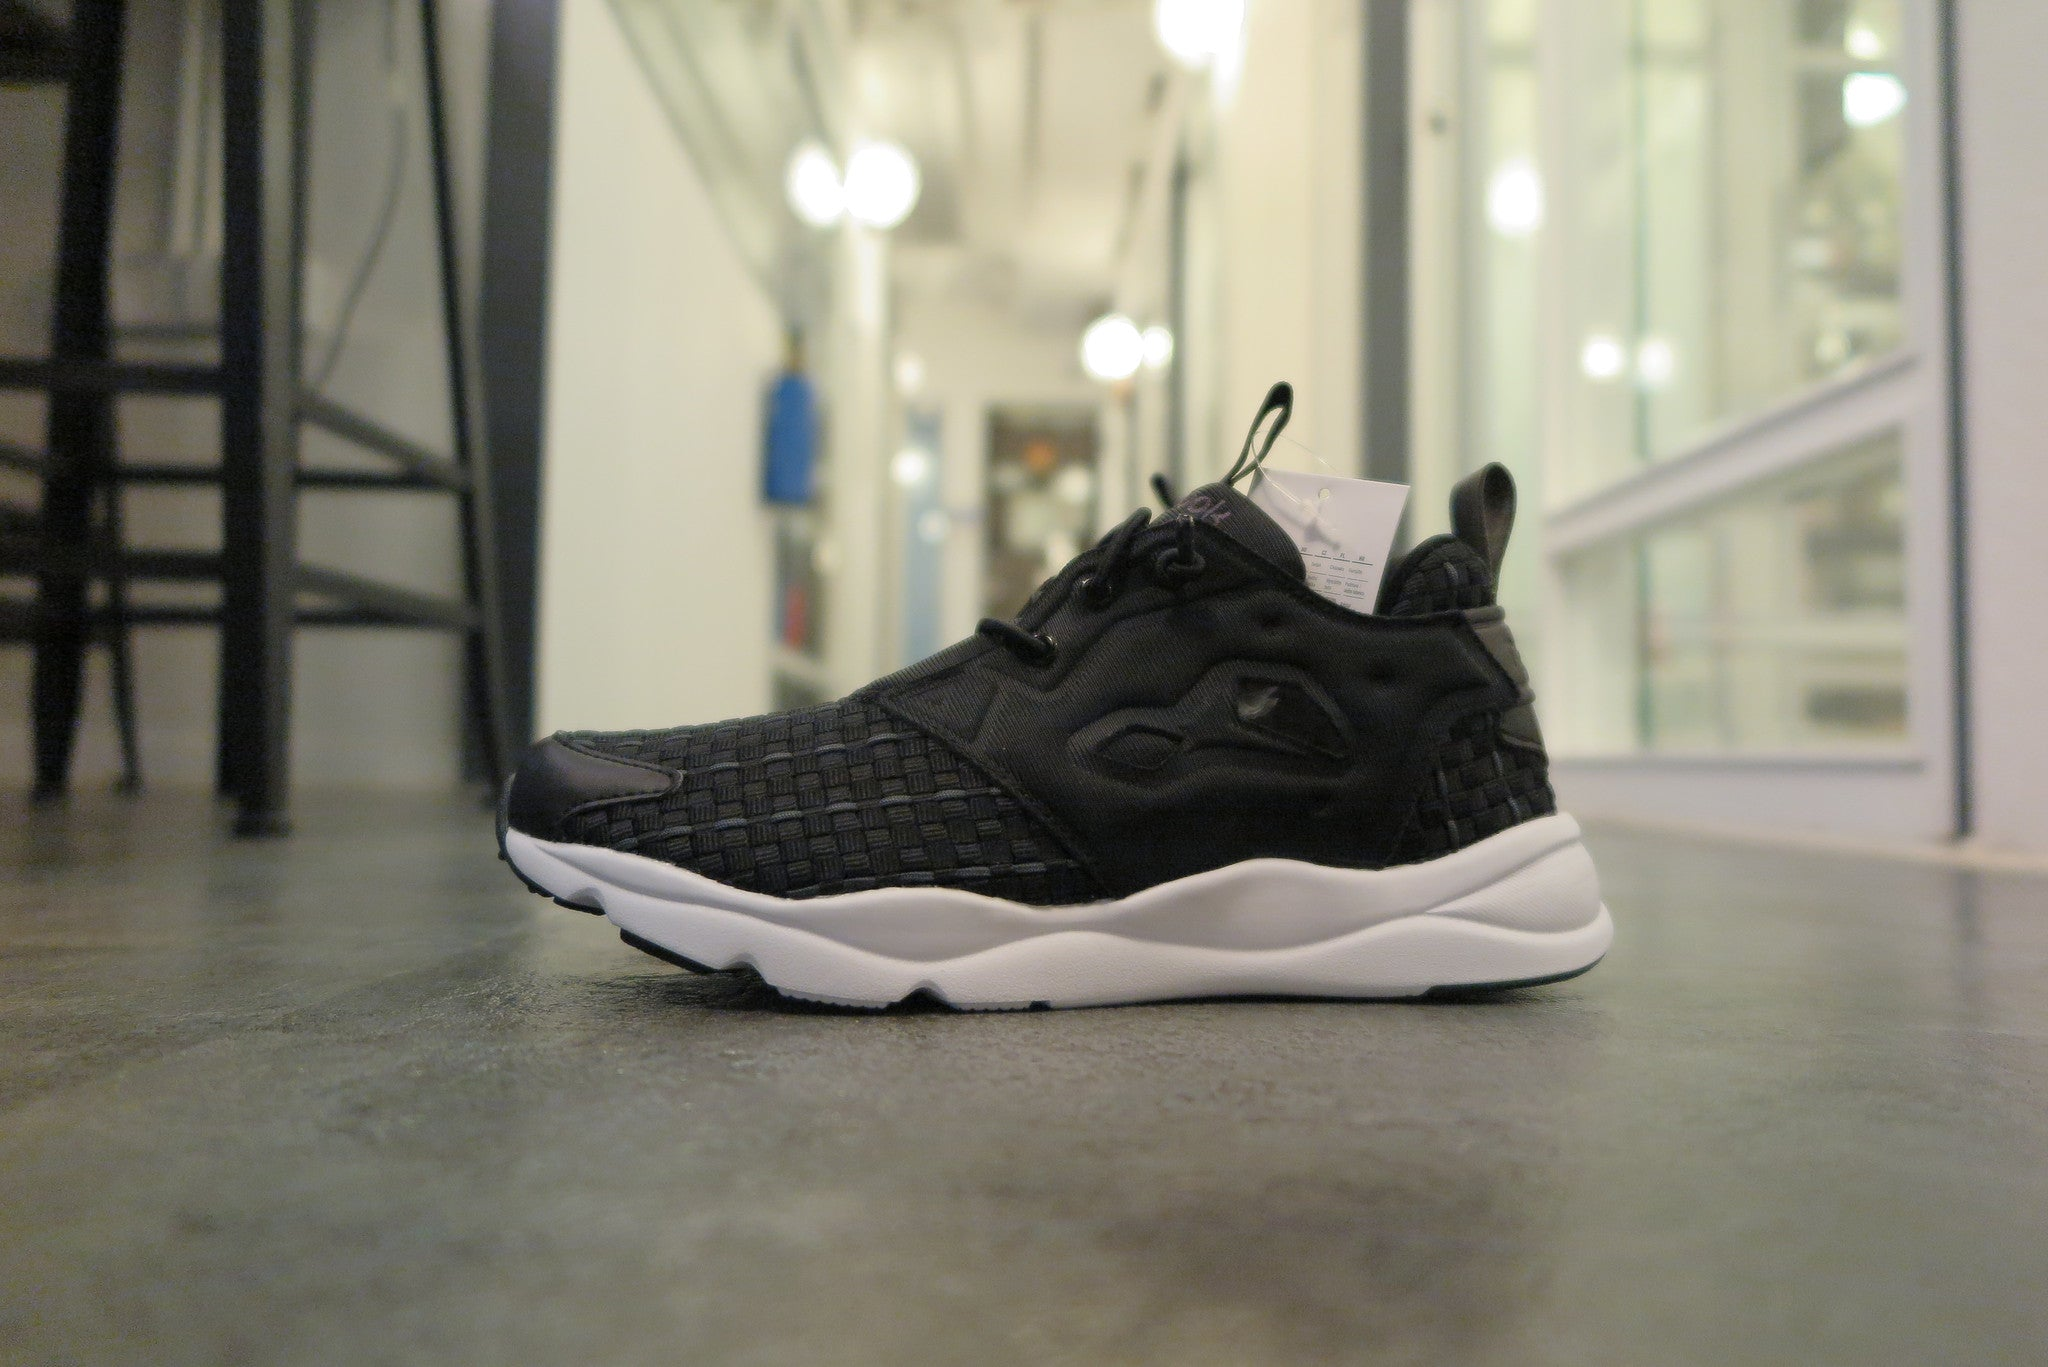 Reebok WMNS Furylite New Woven in Black/Solid Grey/White #V70798-Sneakers-Navy Selected Shop